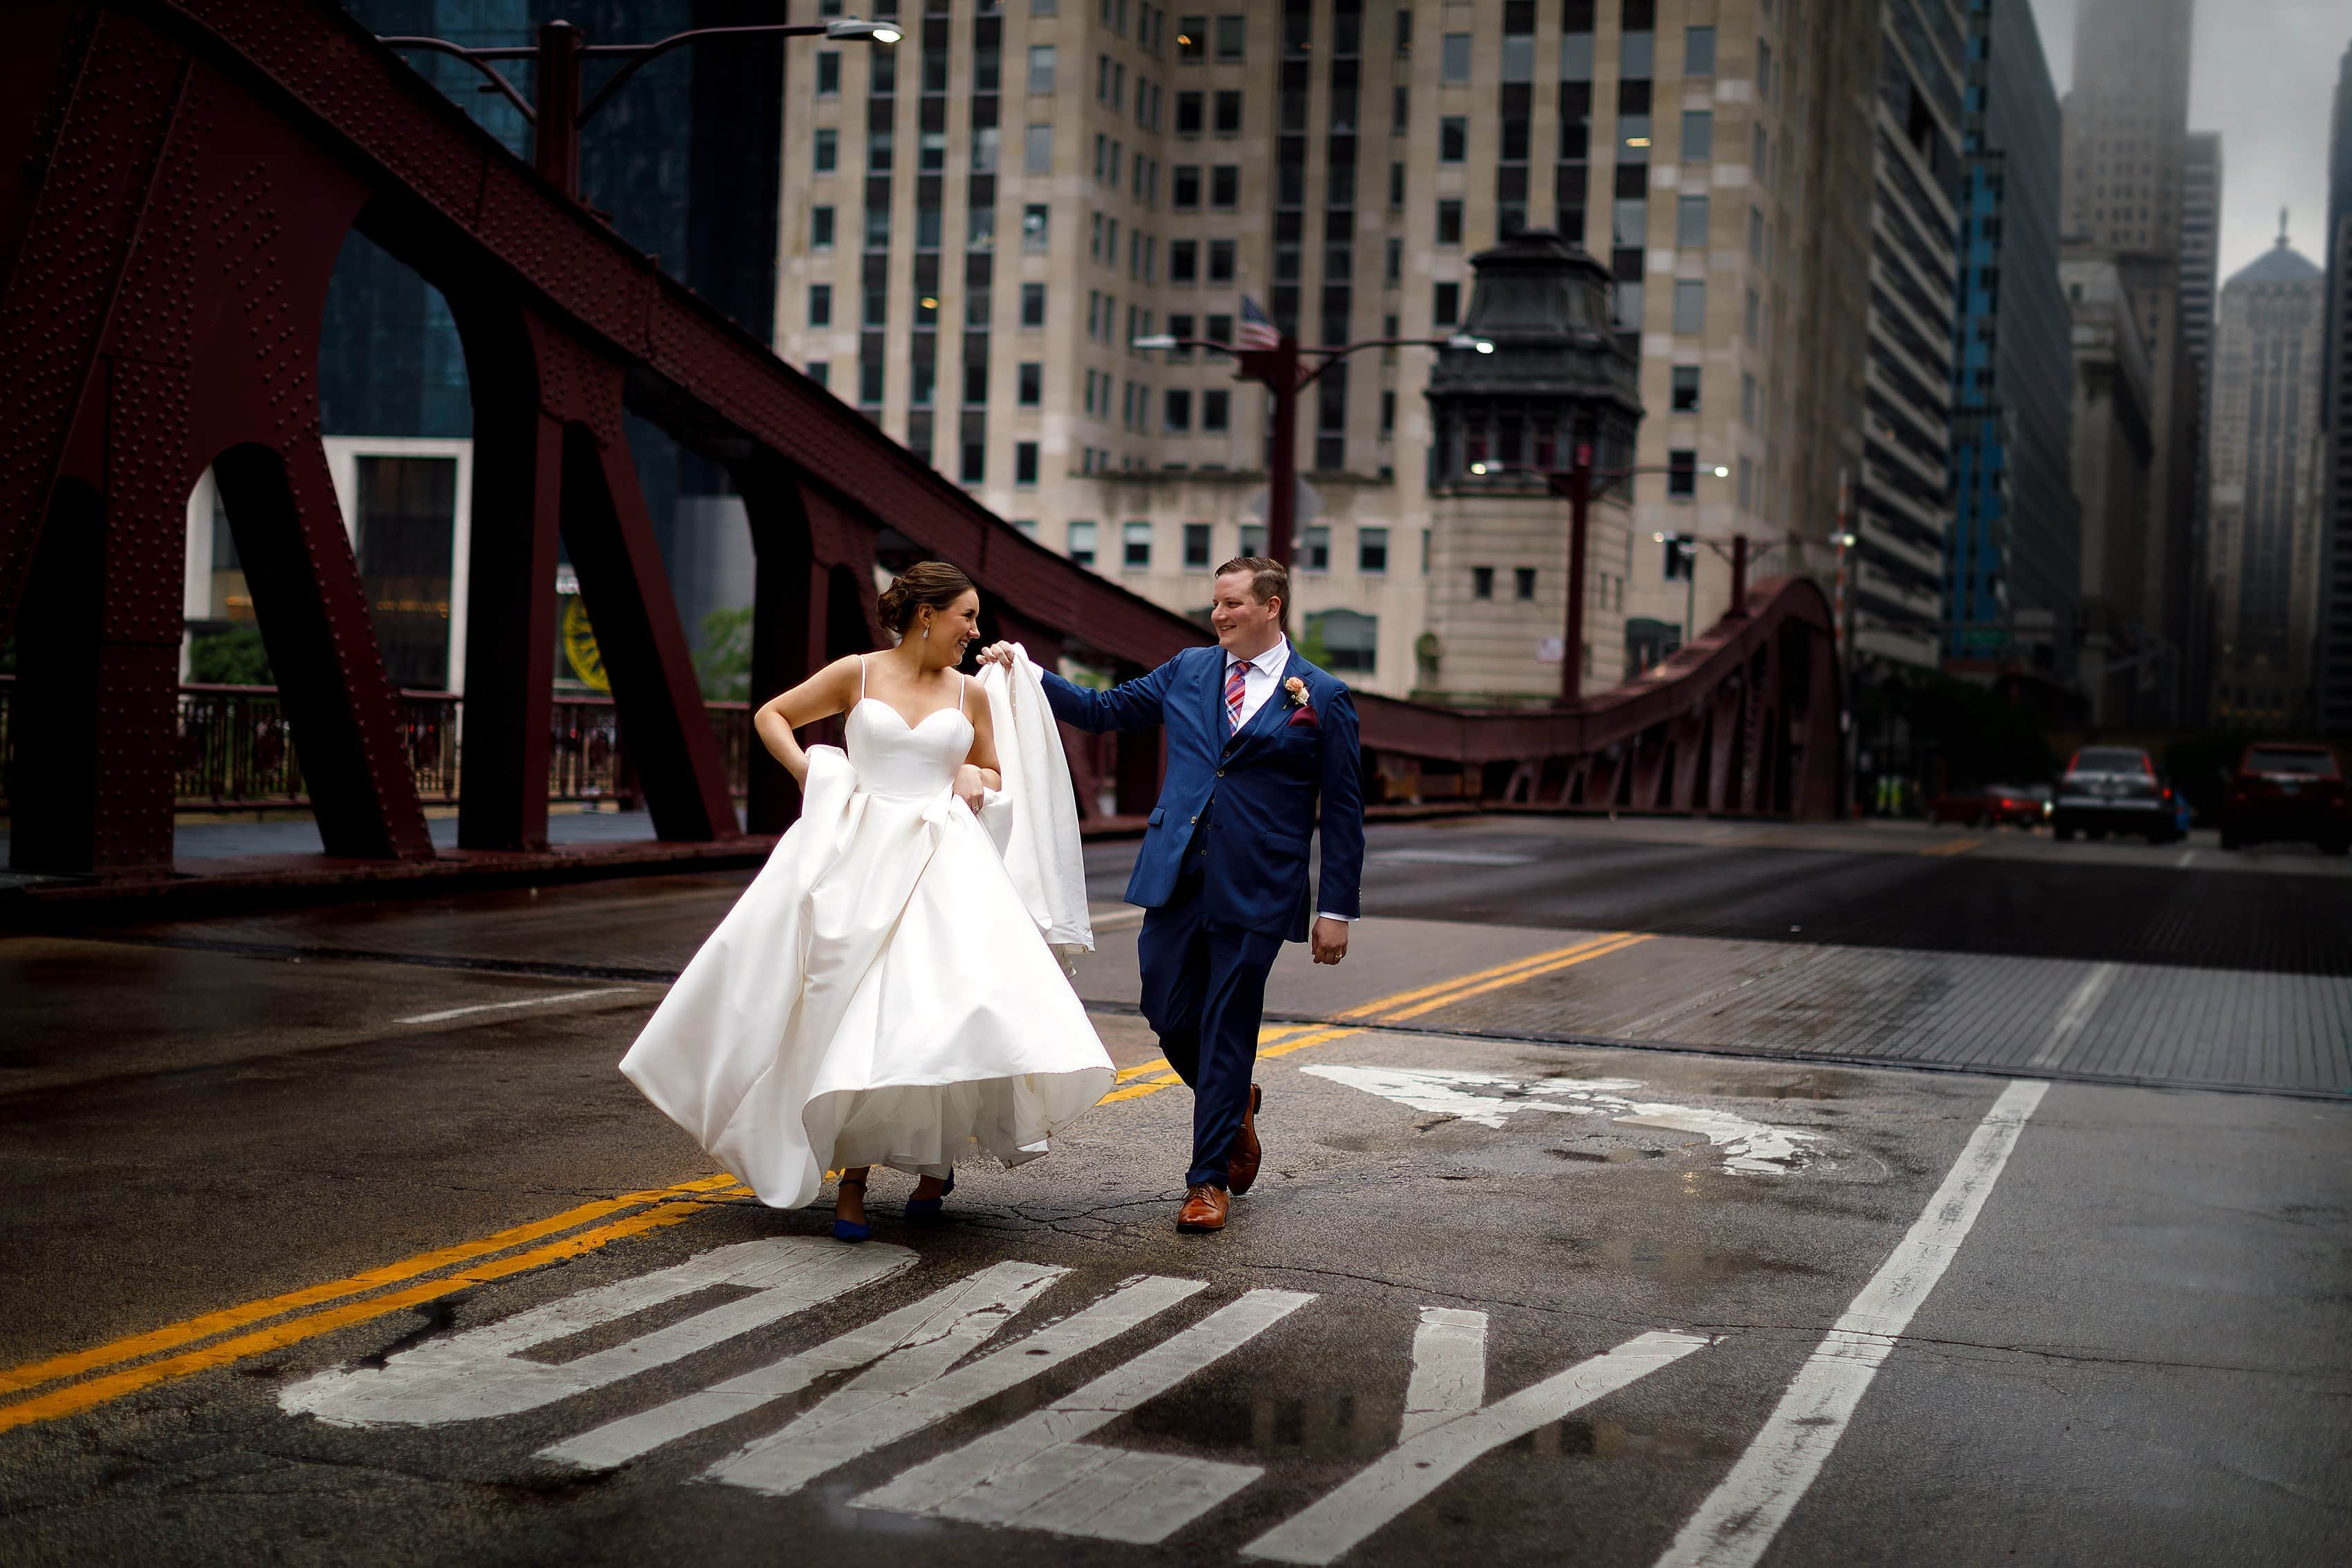 Summer Library Wedding in Chicago: Christine & Brian